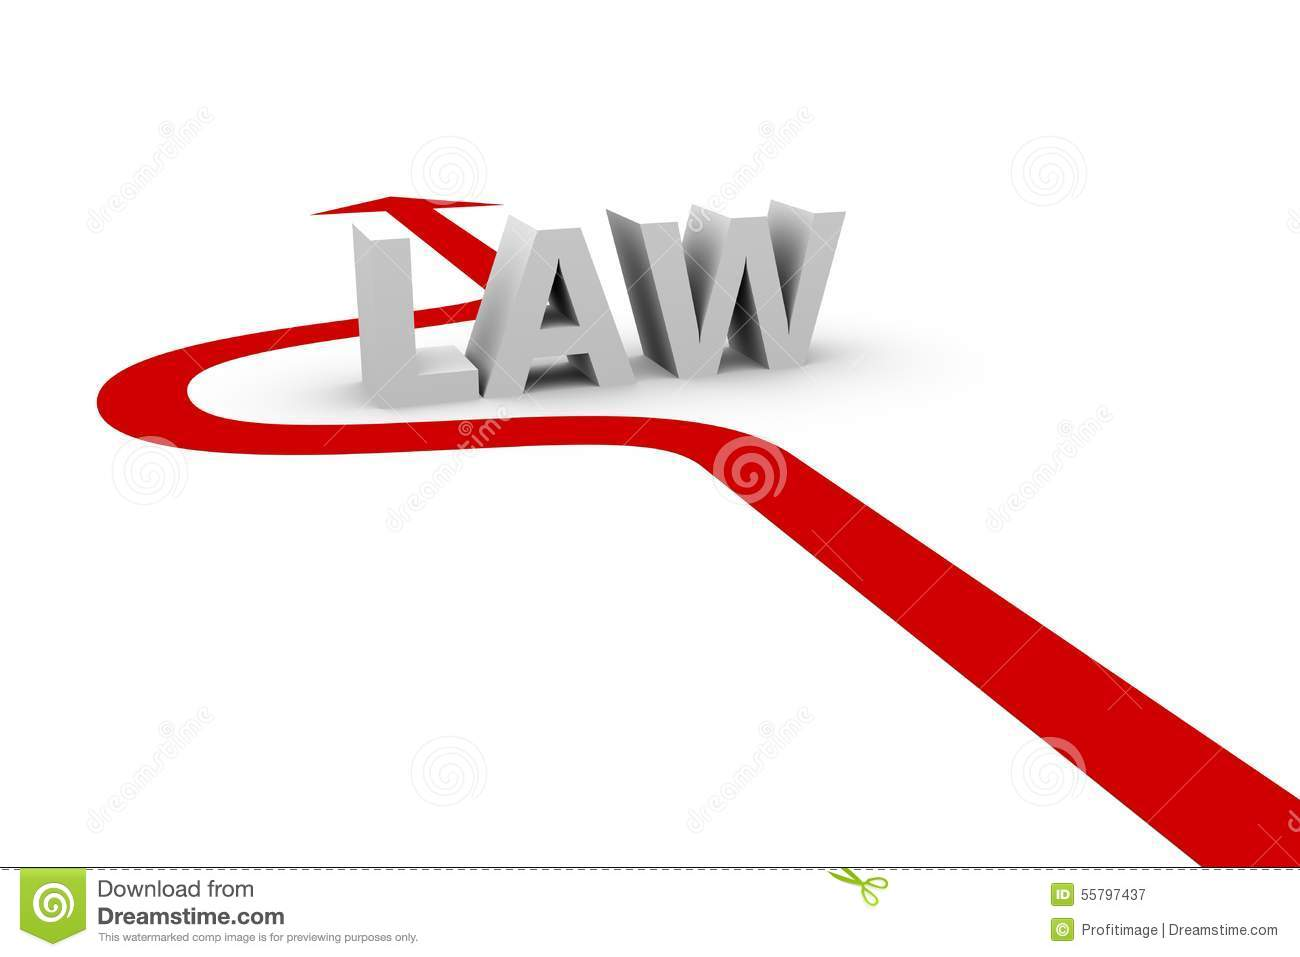 violation-law-red-arrow-passing-word-means-offence-55797437.jpg